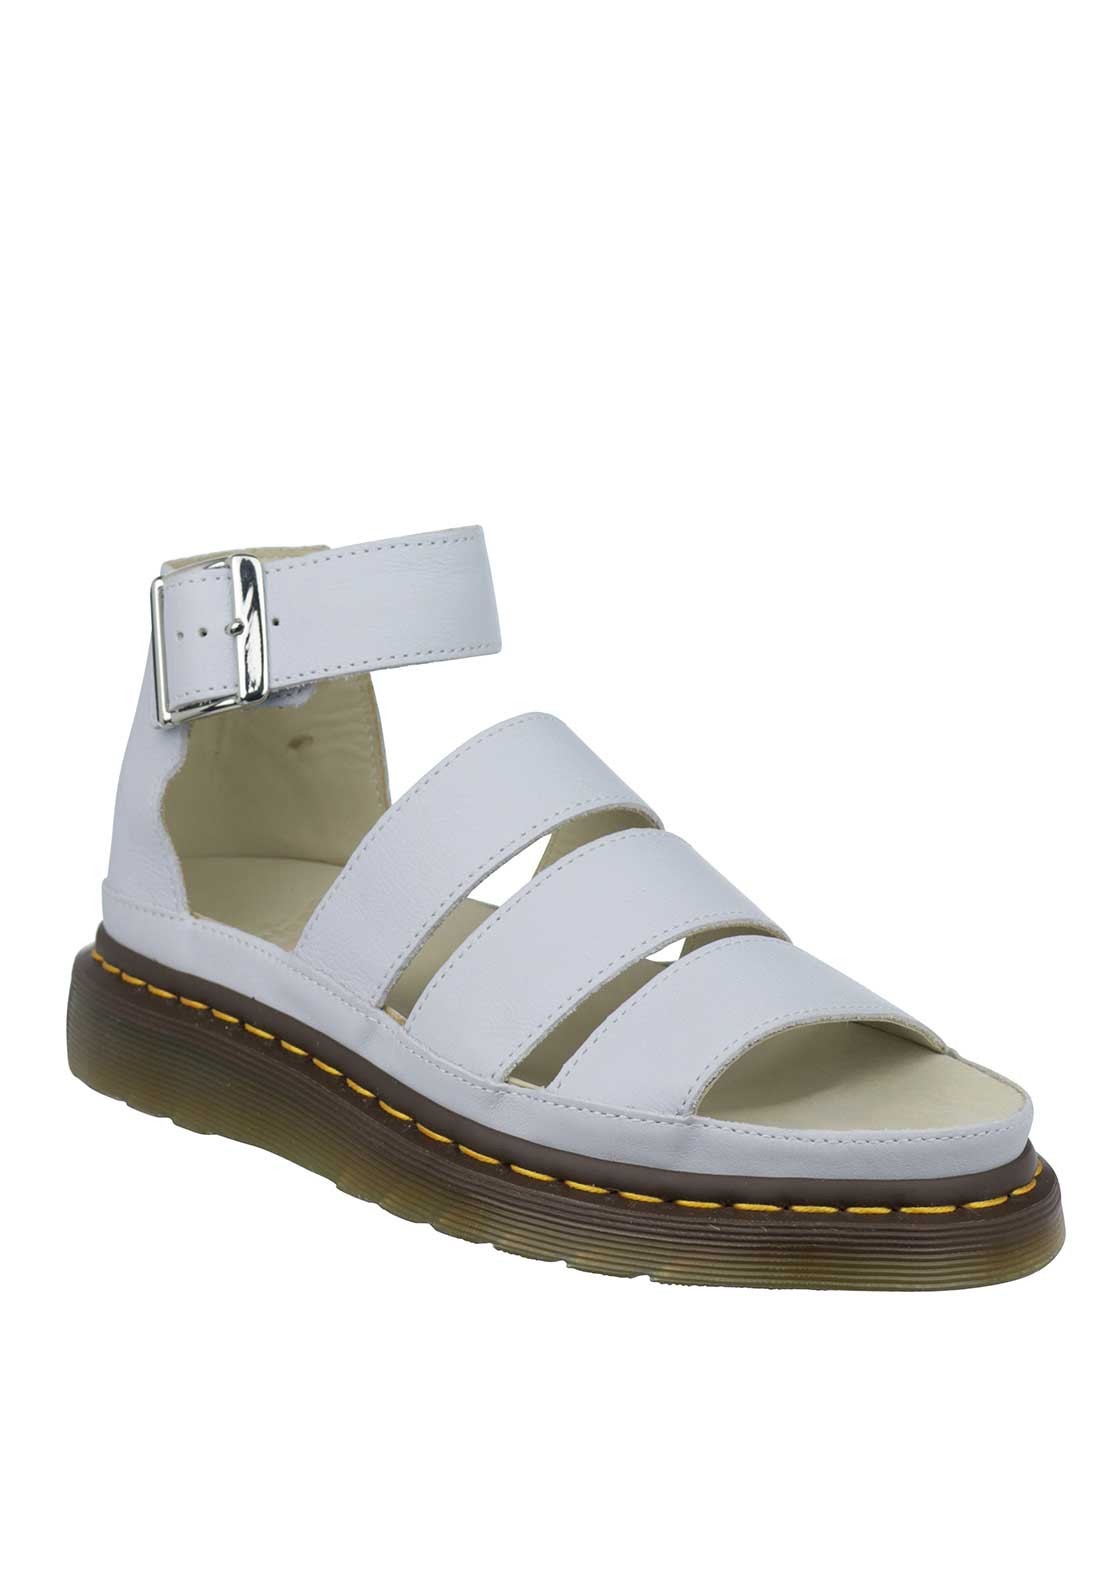 Dr. Martens Womens Clarissa Chunky Strap Leather Sandals, Powder Blue